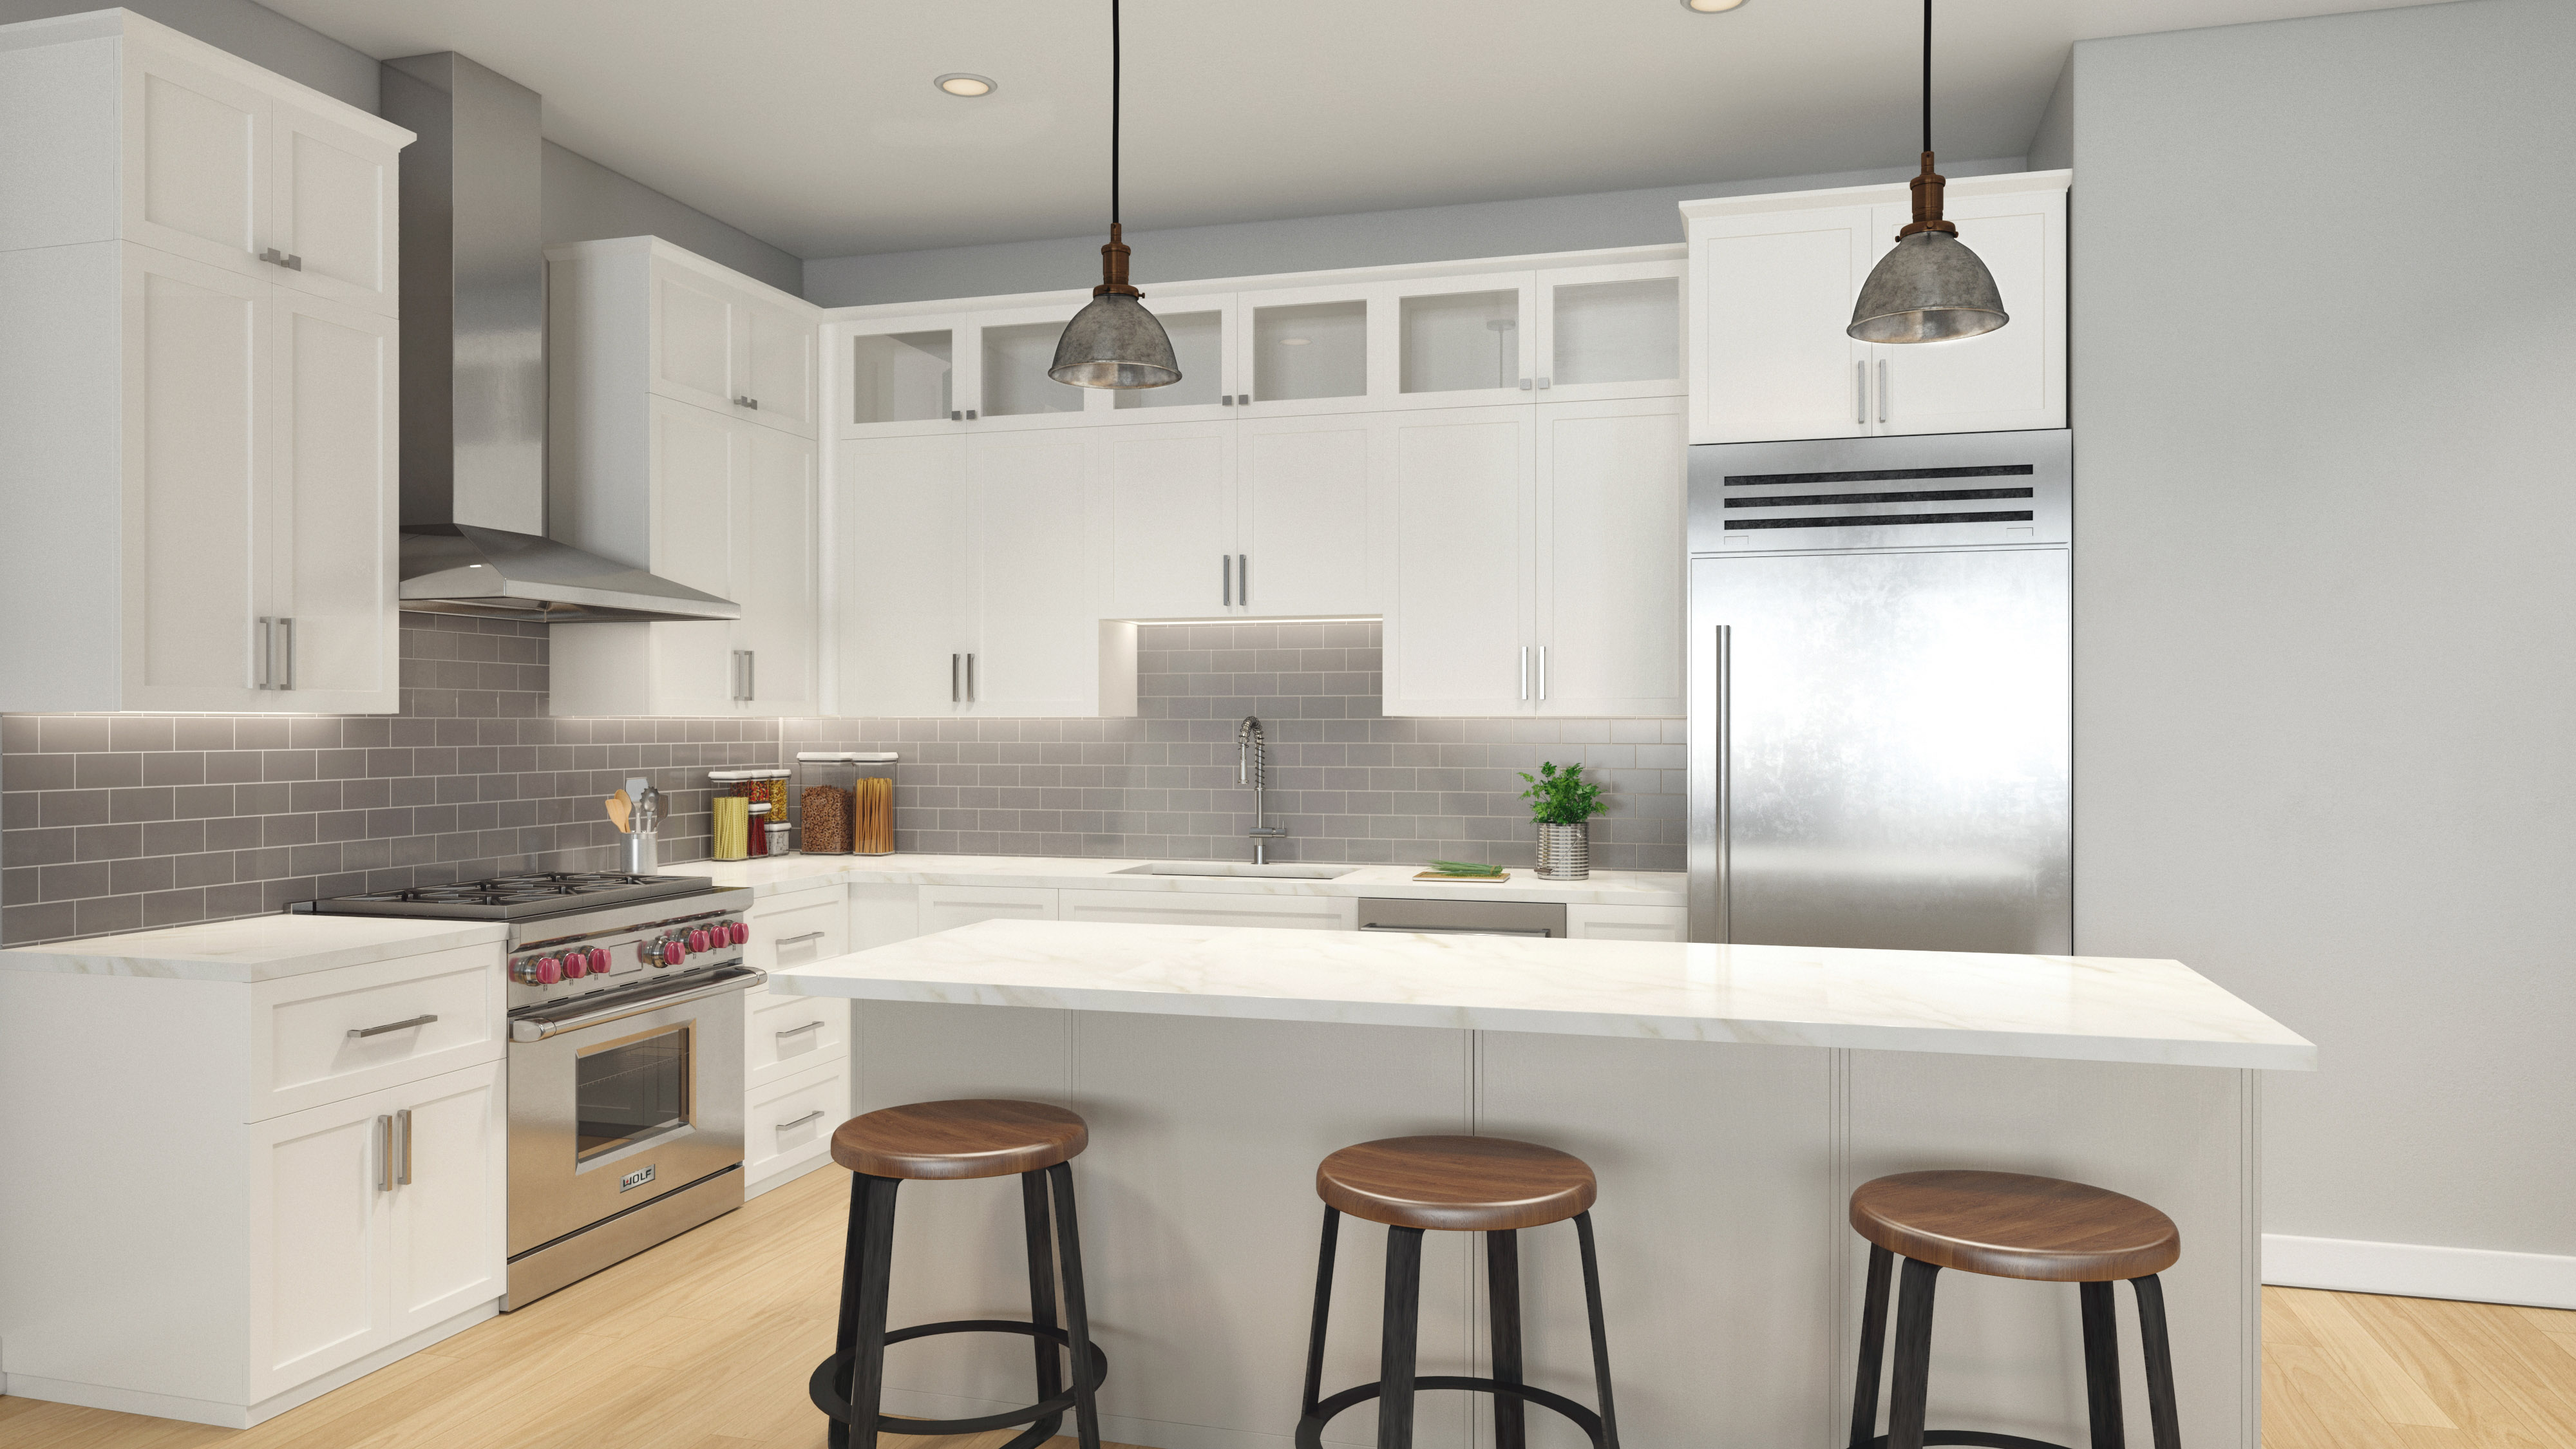 Longford design construction projects for Kitchen and bath design melrose park